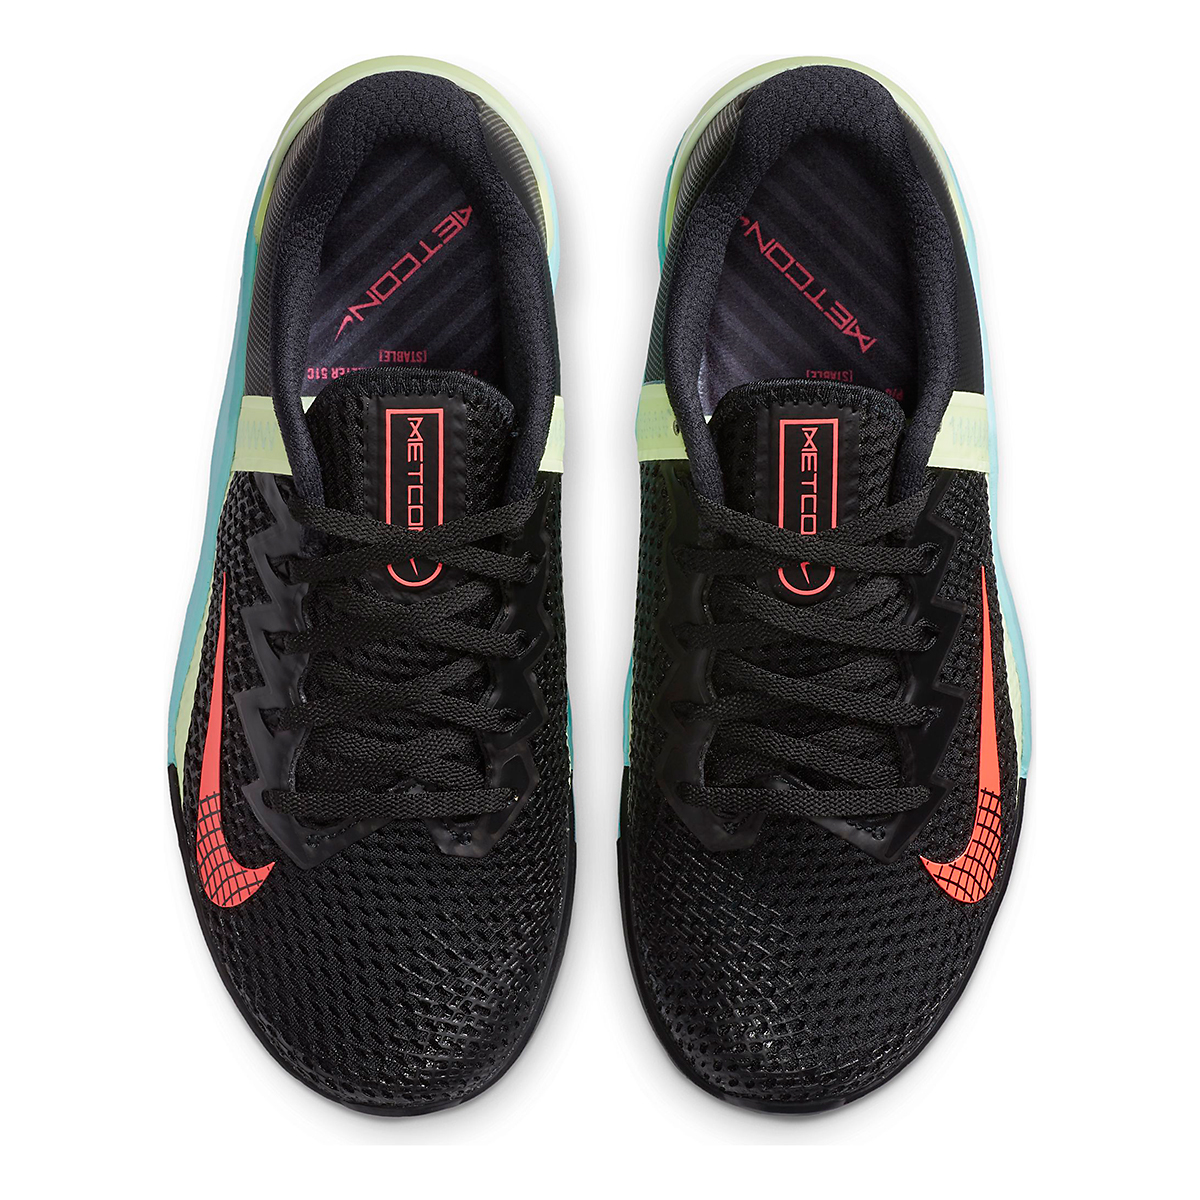 Women's Nike Nike Metcon 6 Training Shoes - Color: Black/White/Glacier Ice/Flash Crimson - Size: 5 - Width: Regular, Black/White/Glacier Ice/Flash Crimson, large, image 4